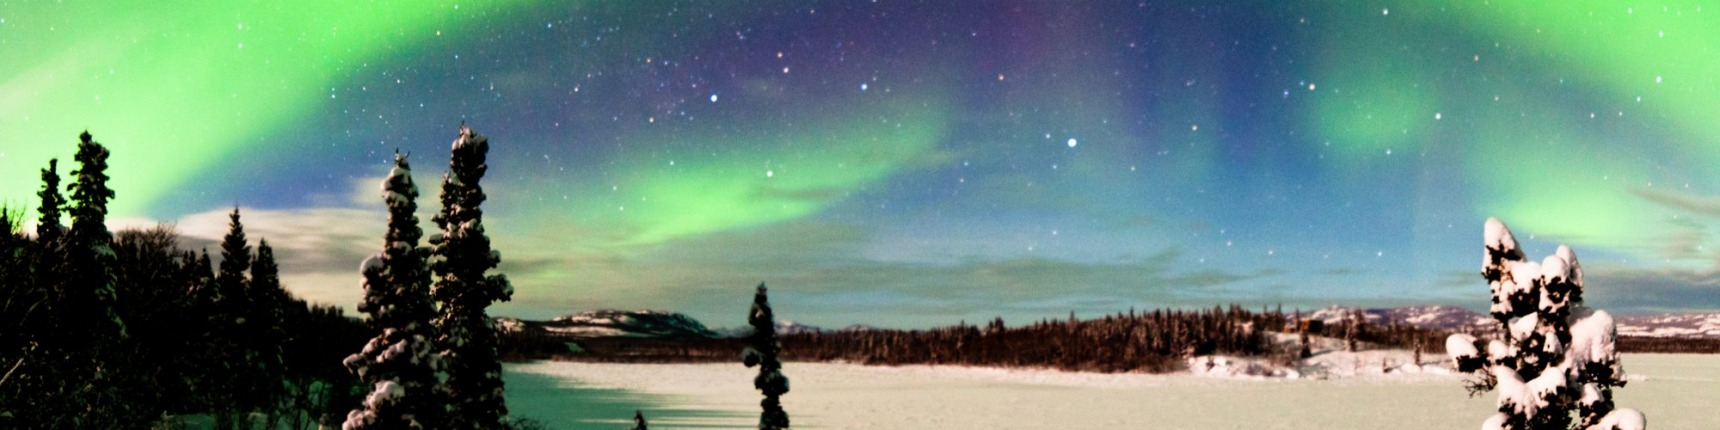 North America Alaska Northern lights